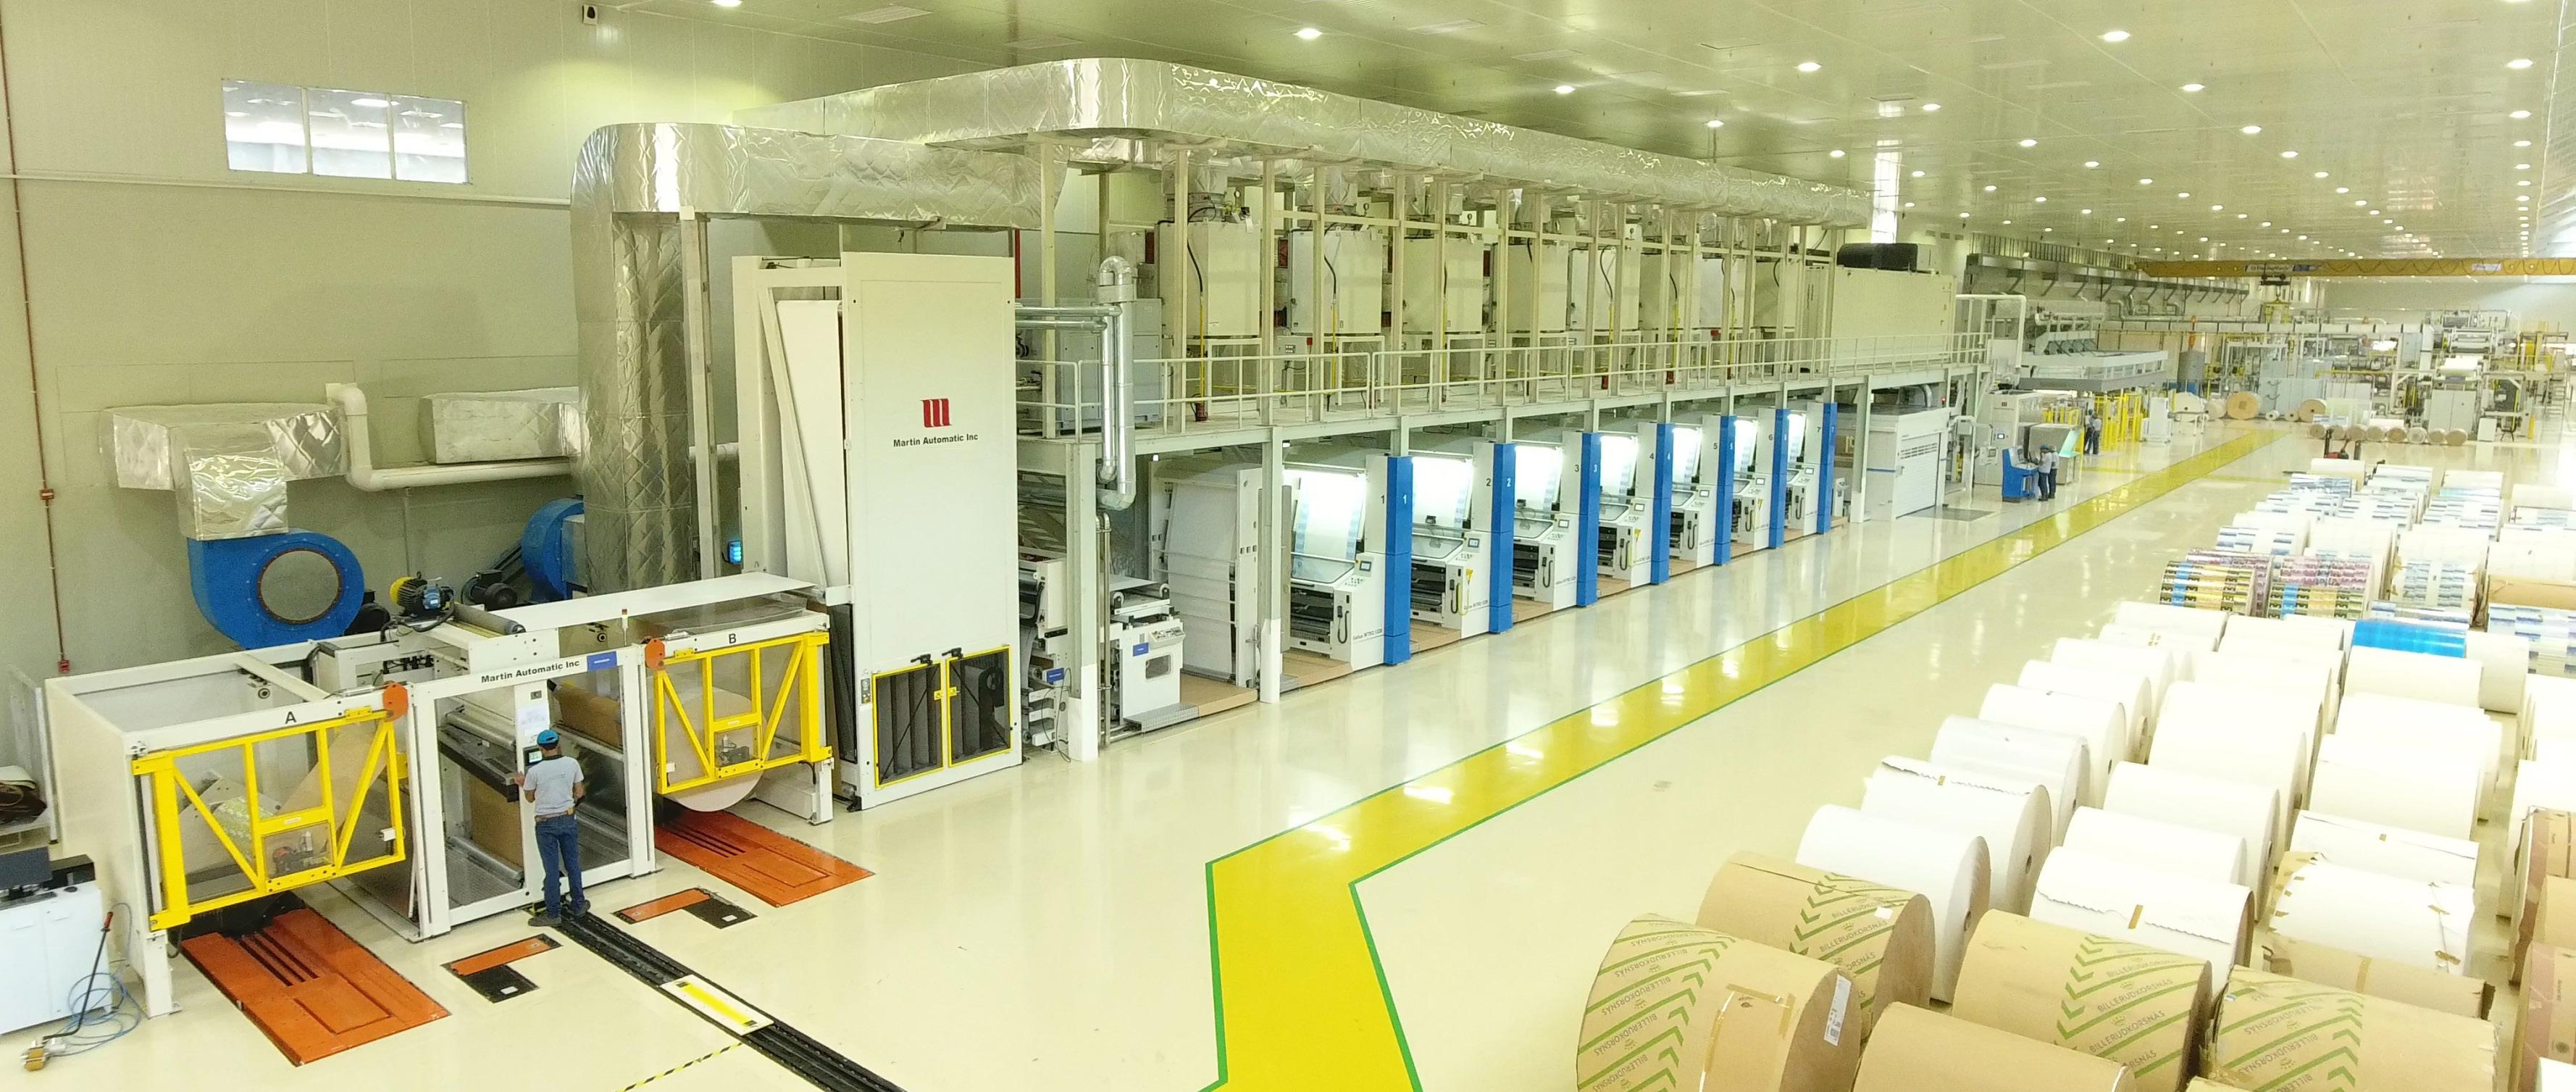 Page 36 of Roland 700 Evolution Indian packaging printer aims to grow significantly